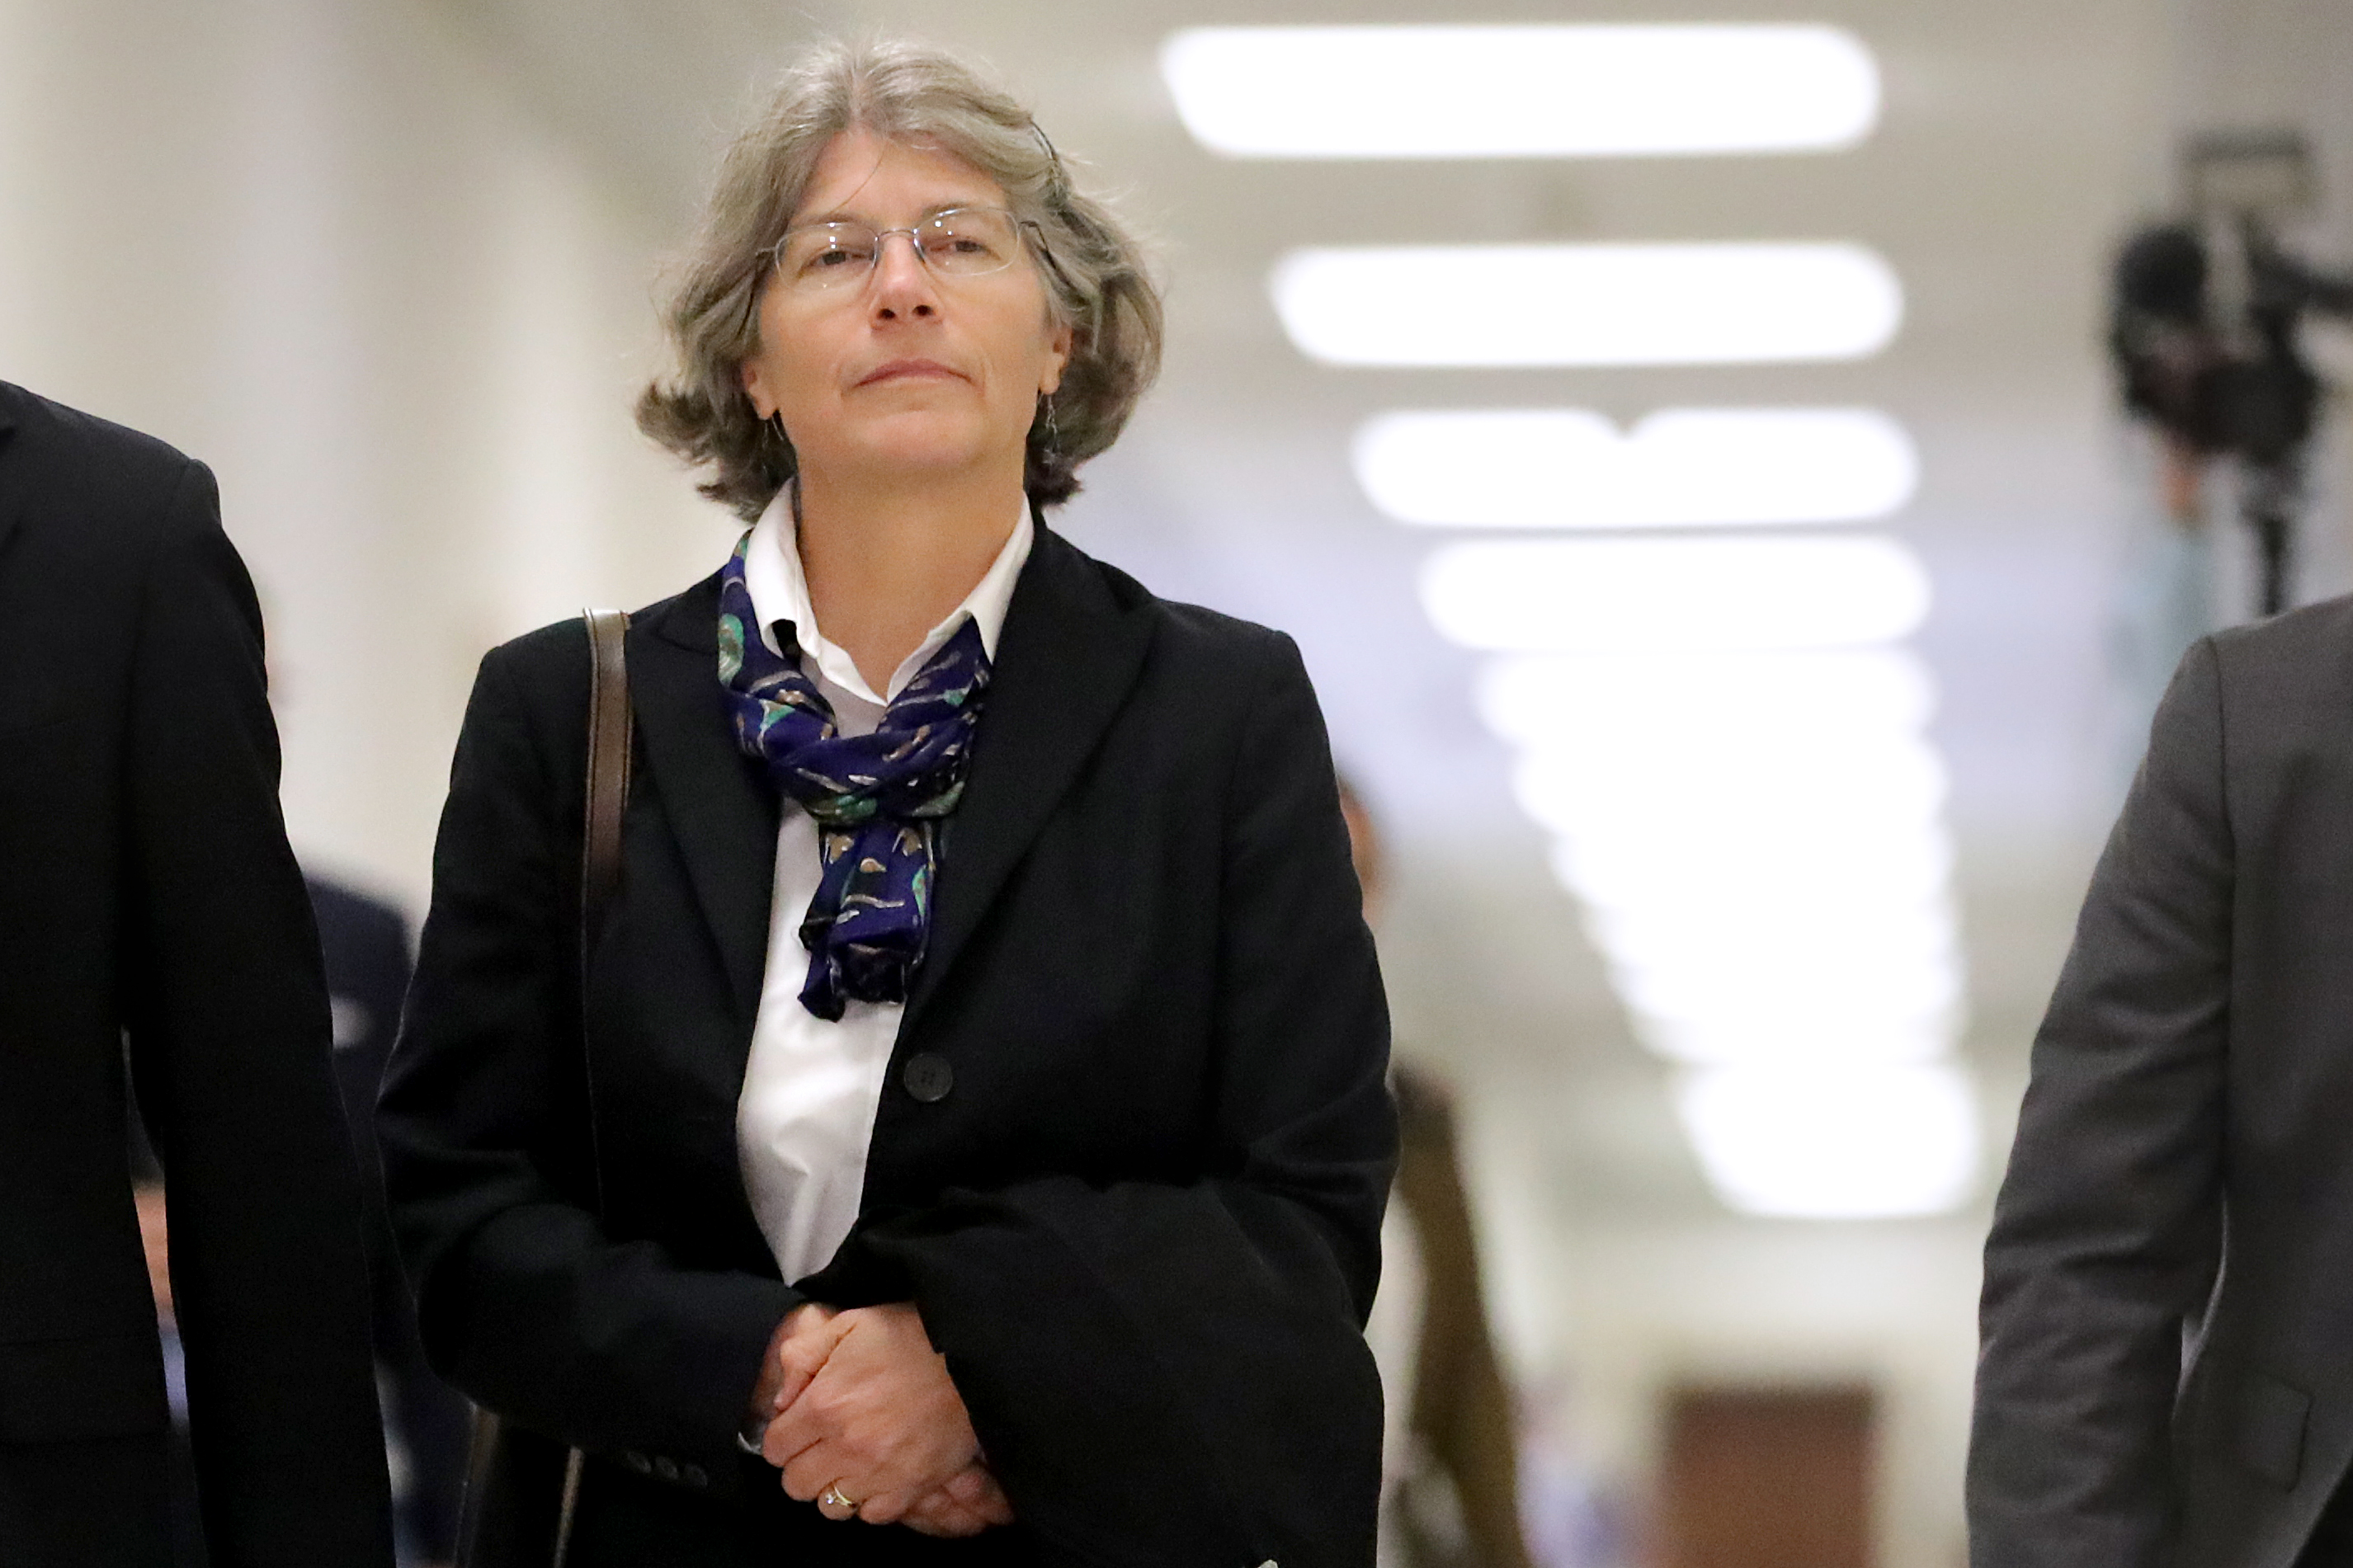 Bruce Ohr Gave His Wife's Fusion GPS Research To The FBI. Here Are The Documents